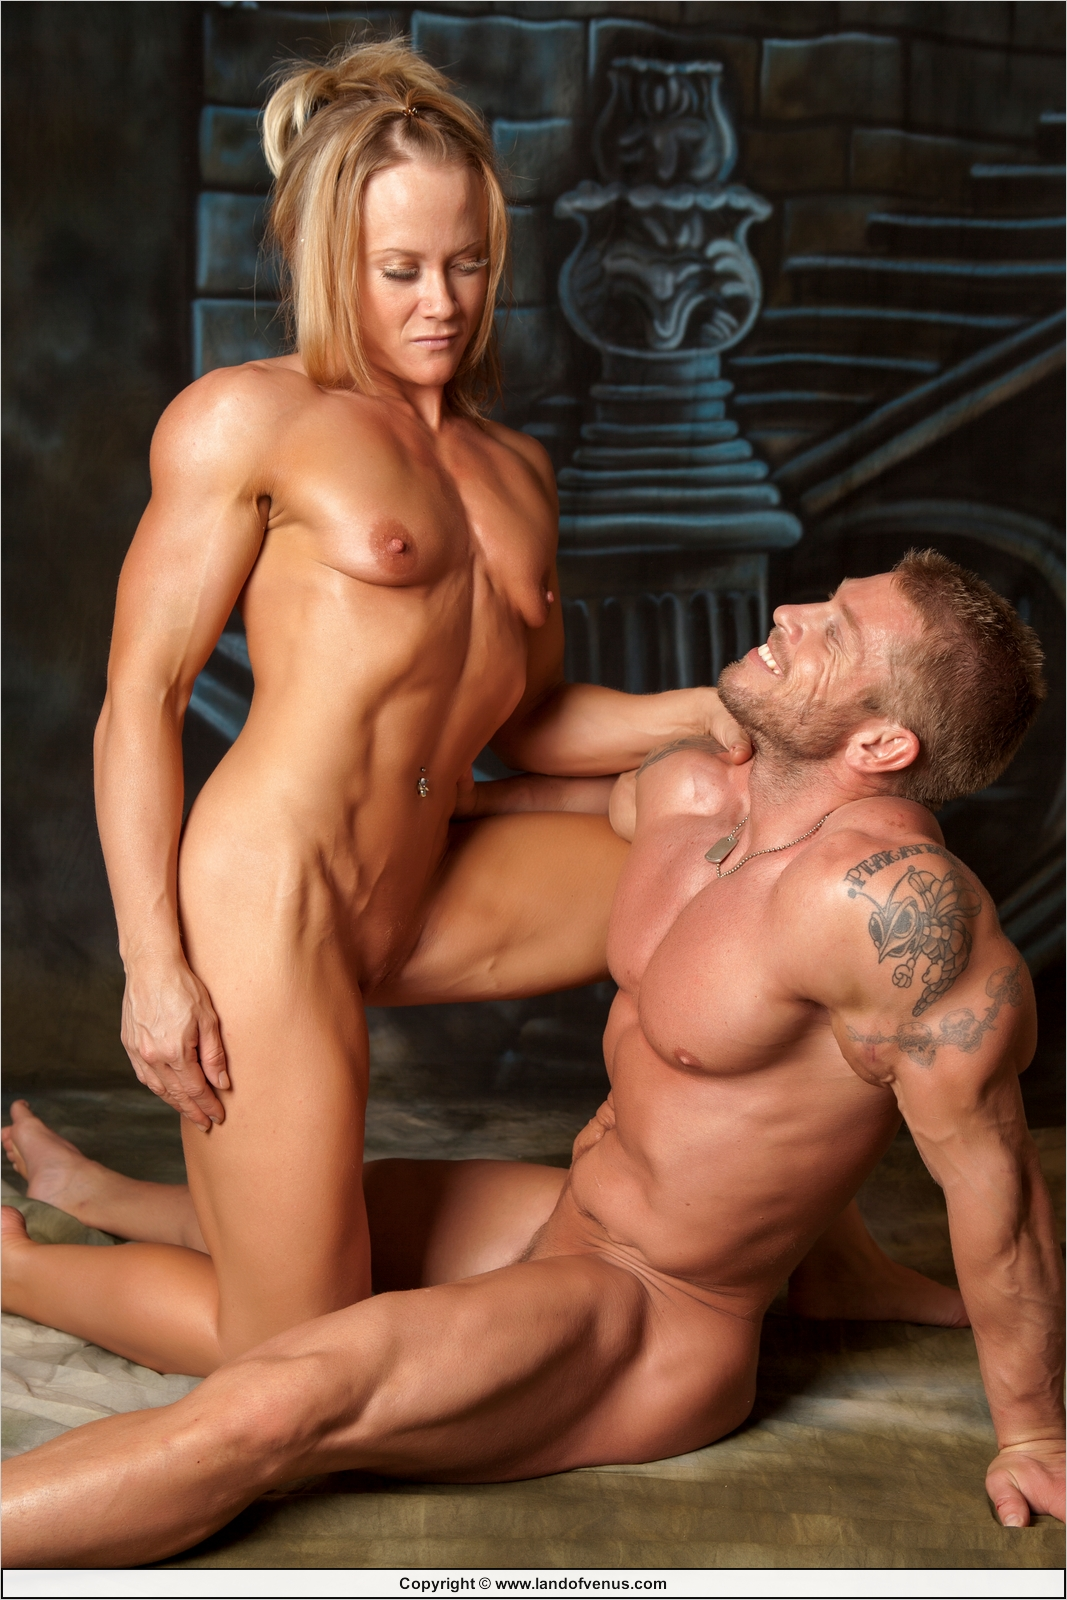 Woman fucking men with muscles sexy